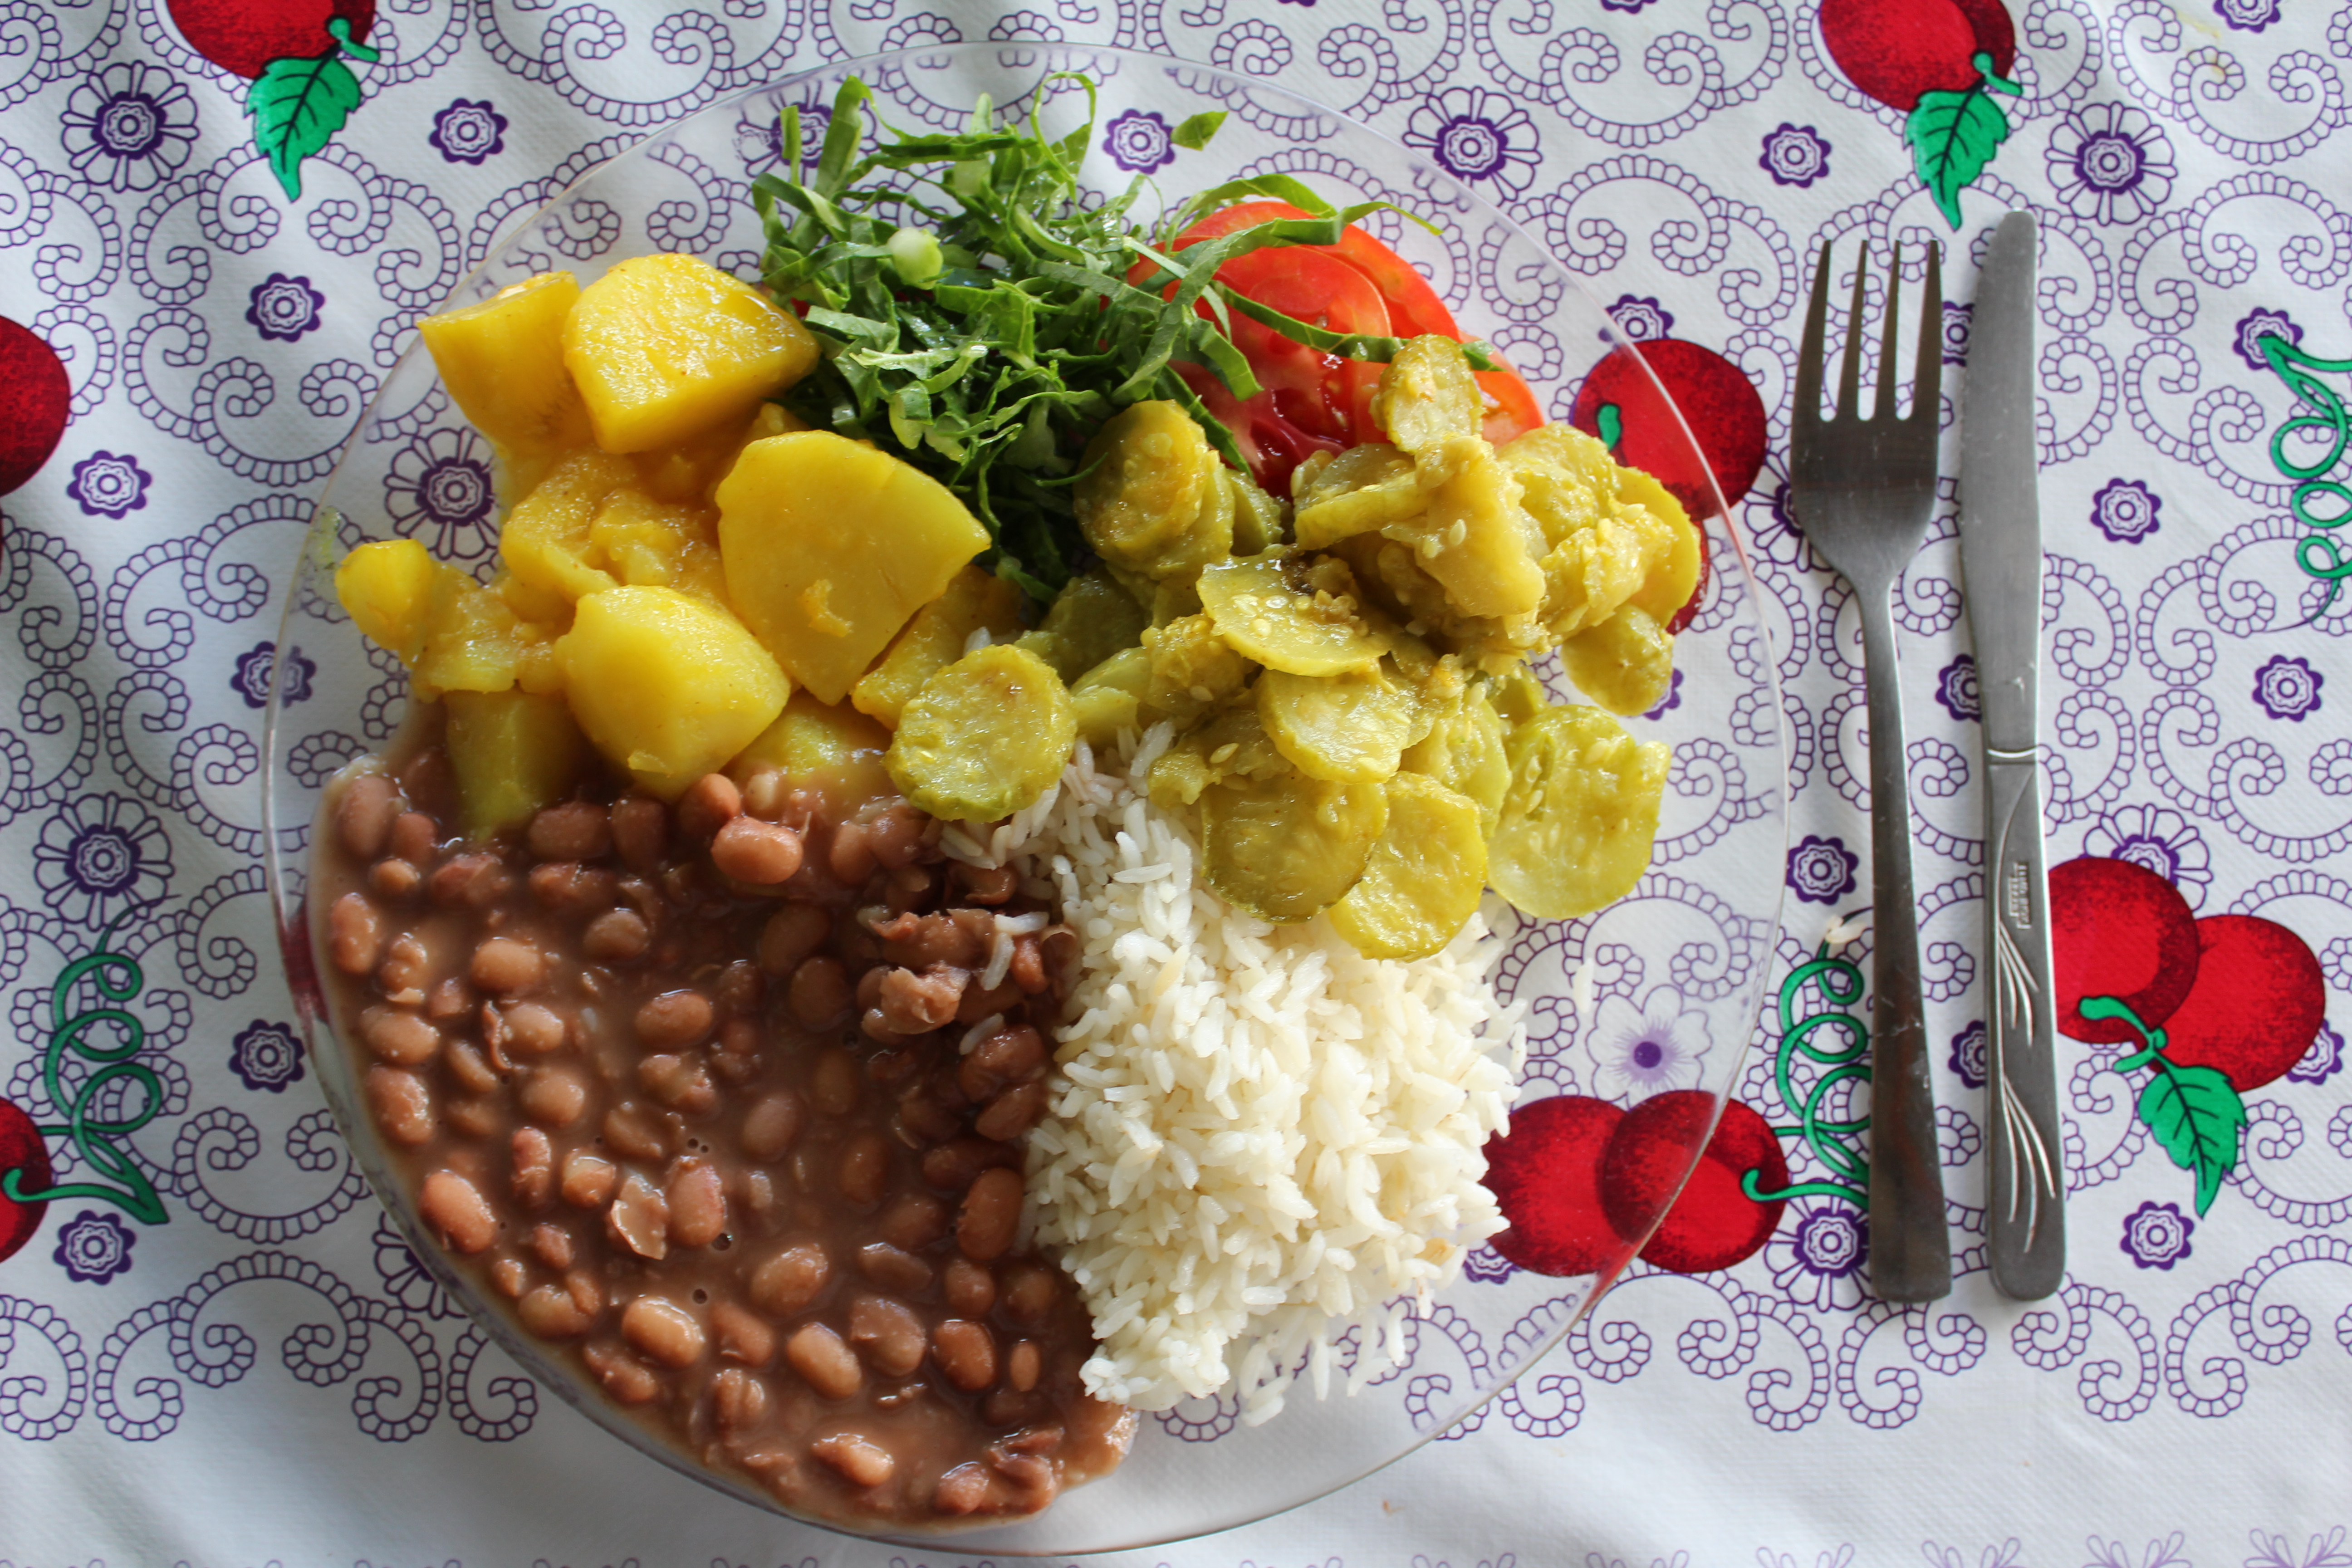 Once in a lifetime my vegan trip to brazil vegan sundays the typical dish rice beans all kinds of veggies healthy easy forumfinder Image collections